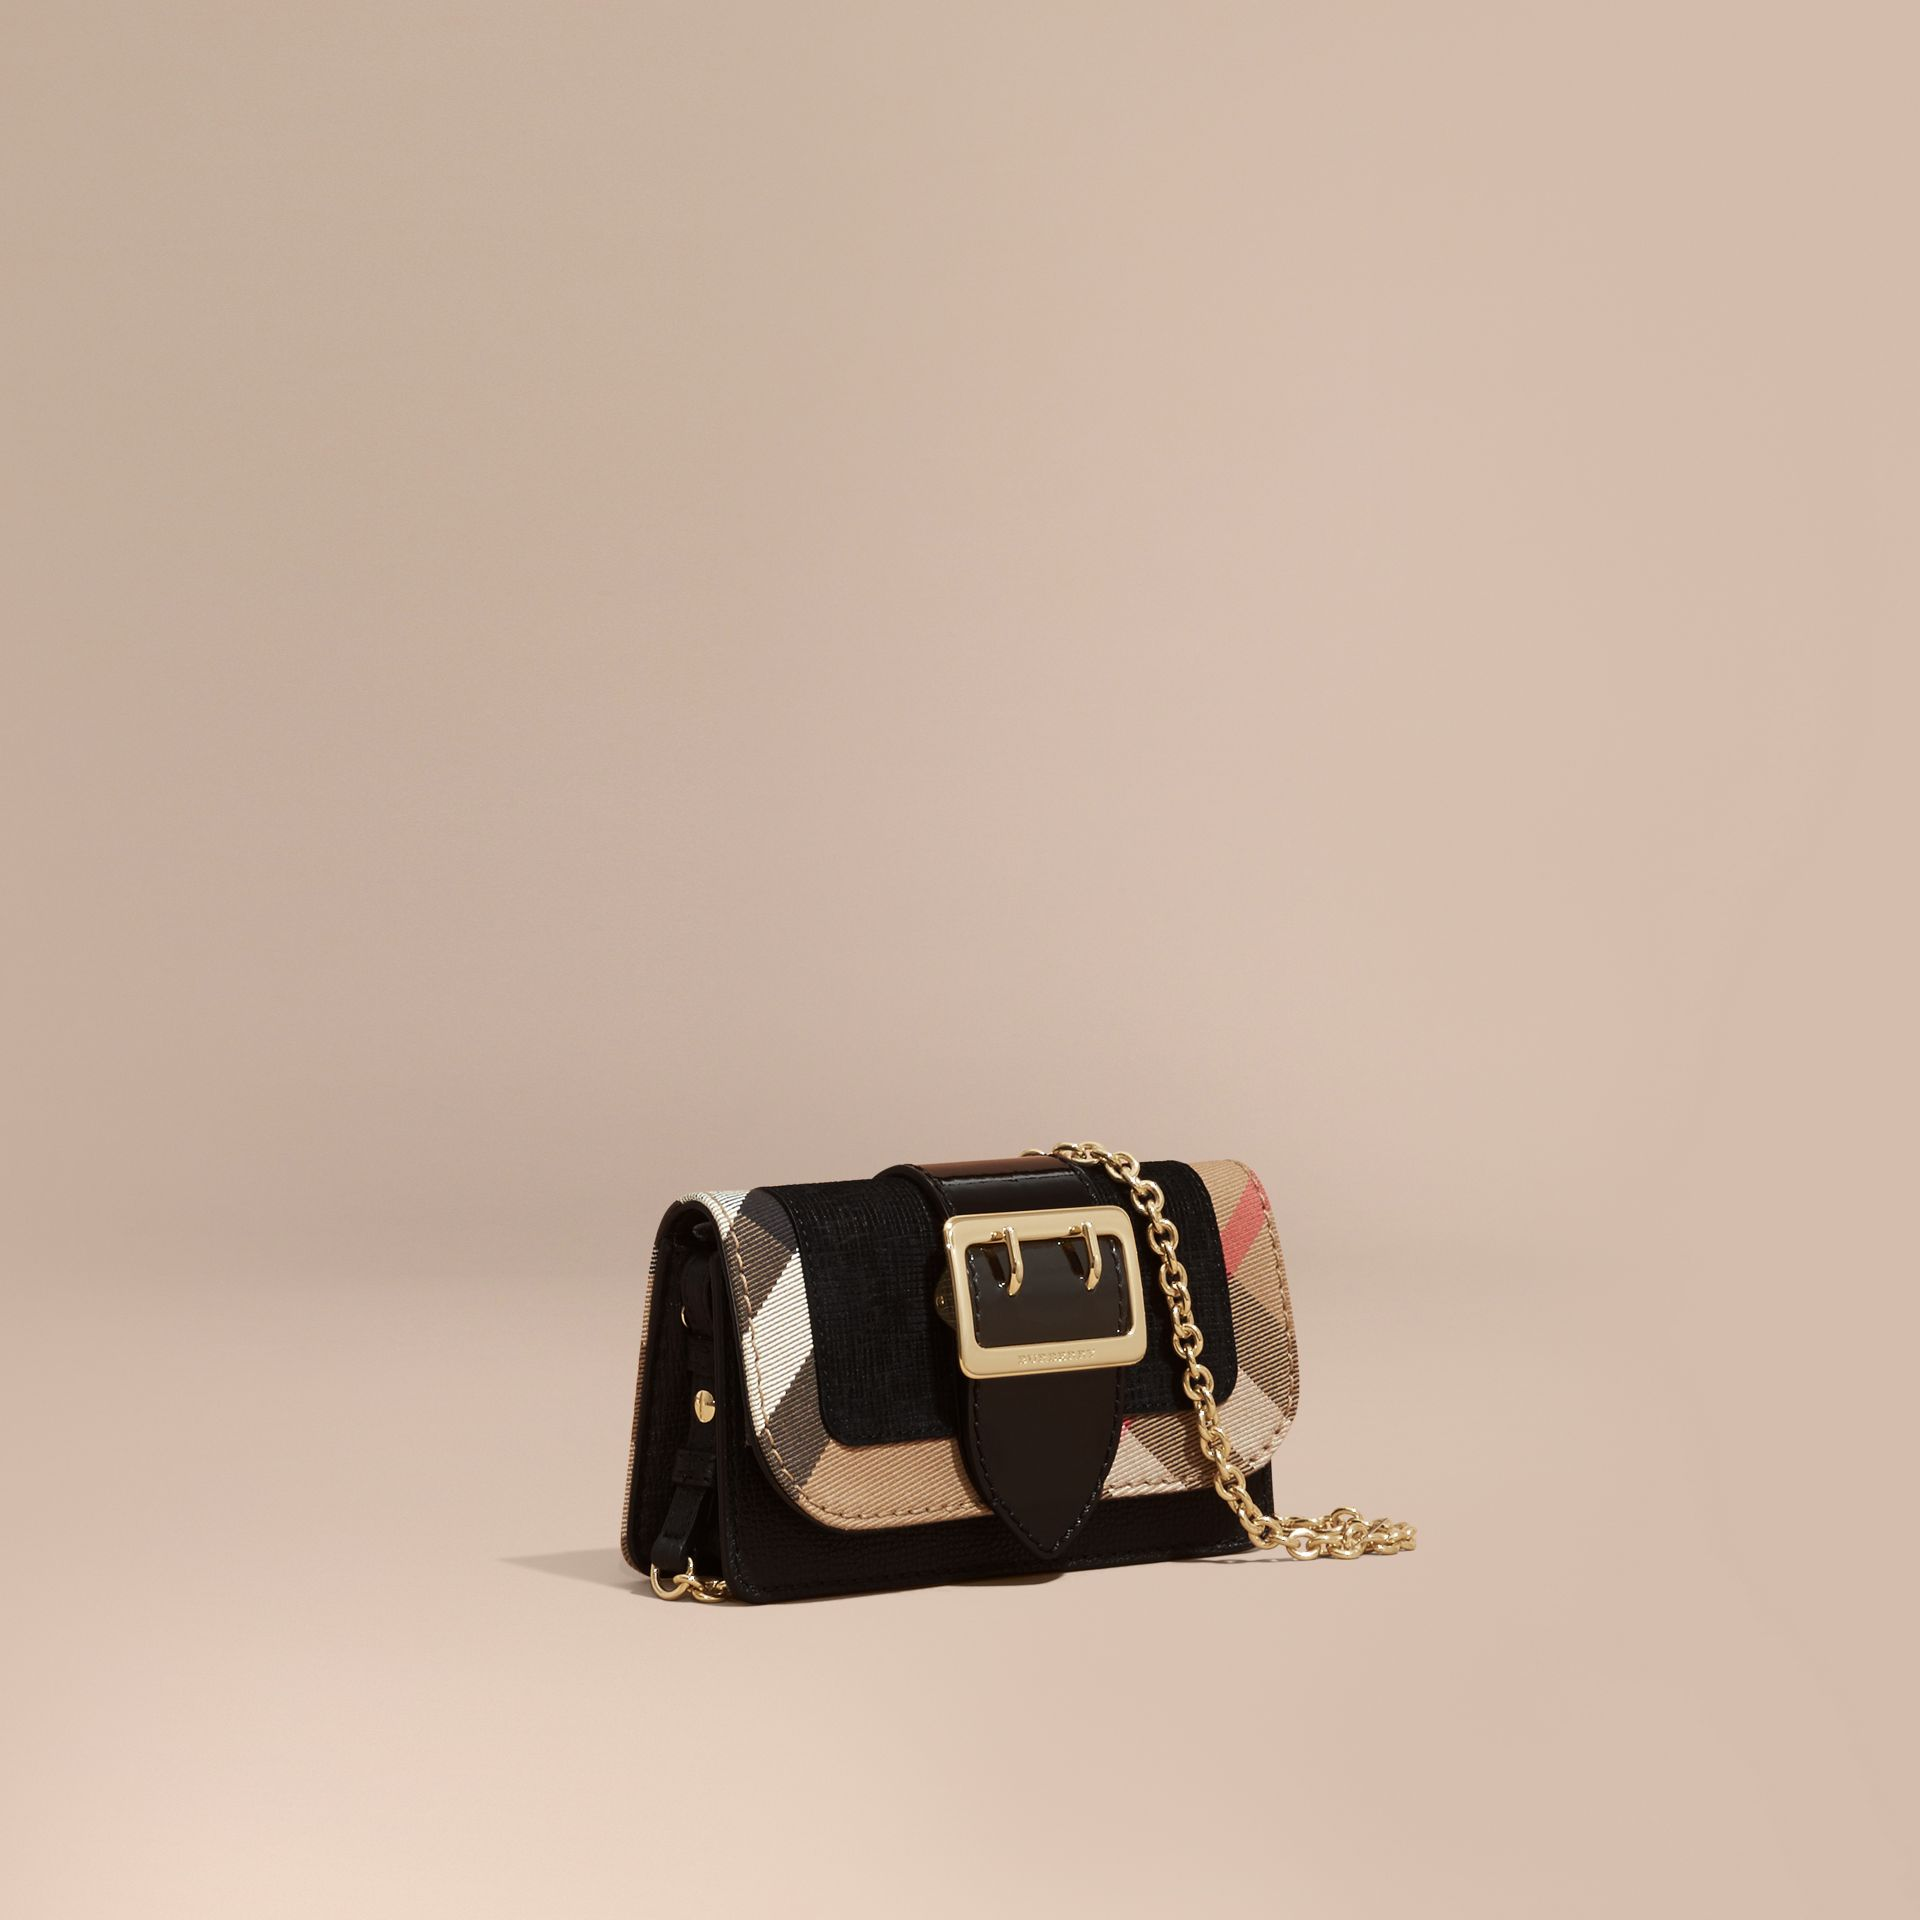 The Mini Buckle Bag in Leather and House Check in Black - Women | Burberry Australia - gallery image 1